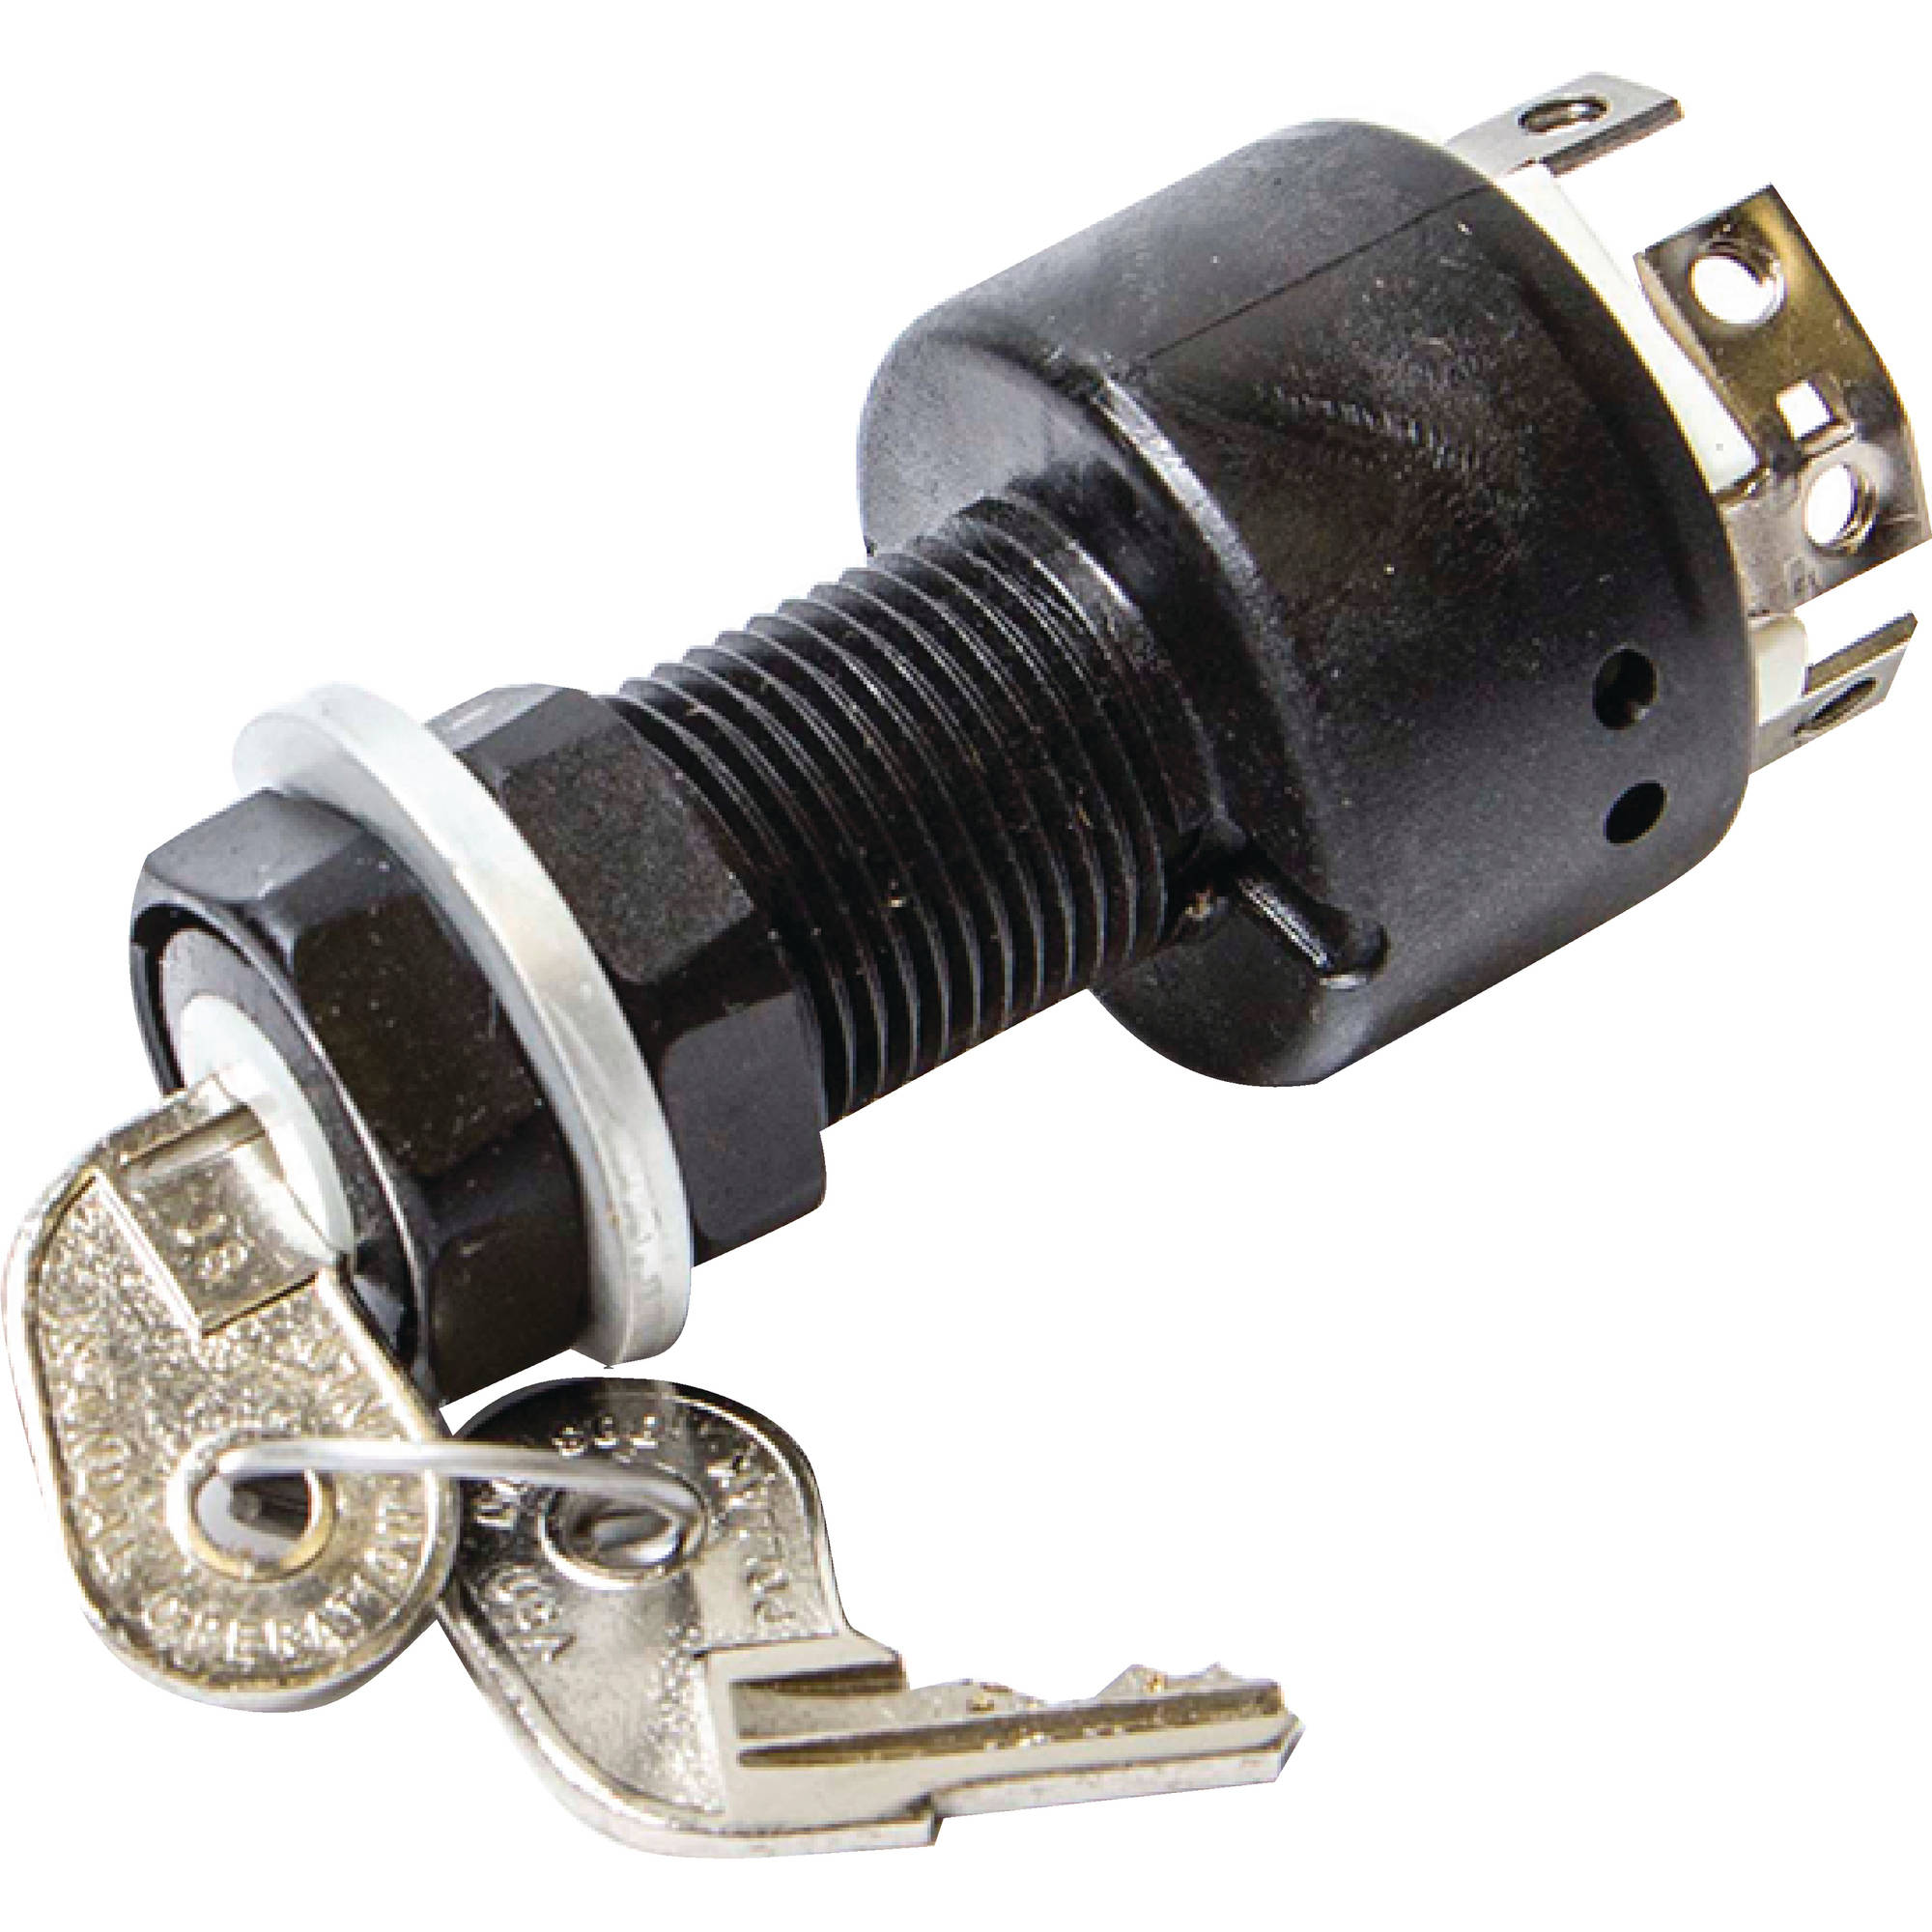 "Sierra Magneto 3-Position 1-1/8"" Polyester 6 Screw Terminal 12V 15 Amp Ignition Starter Switch"